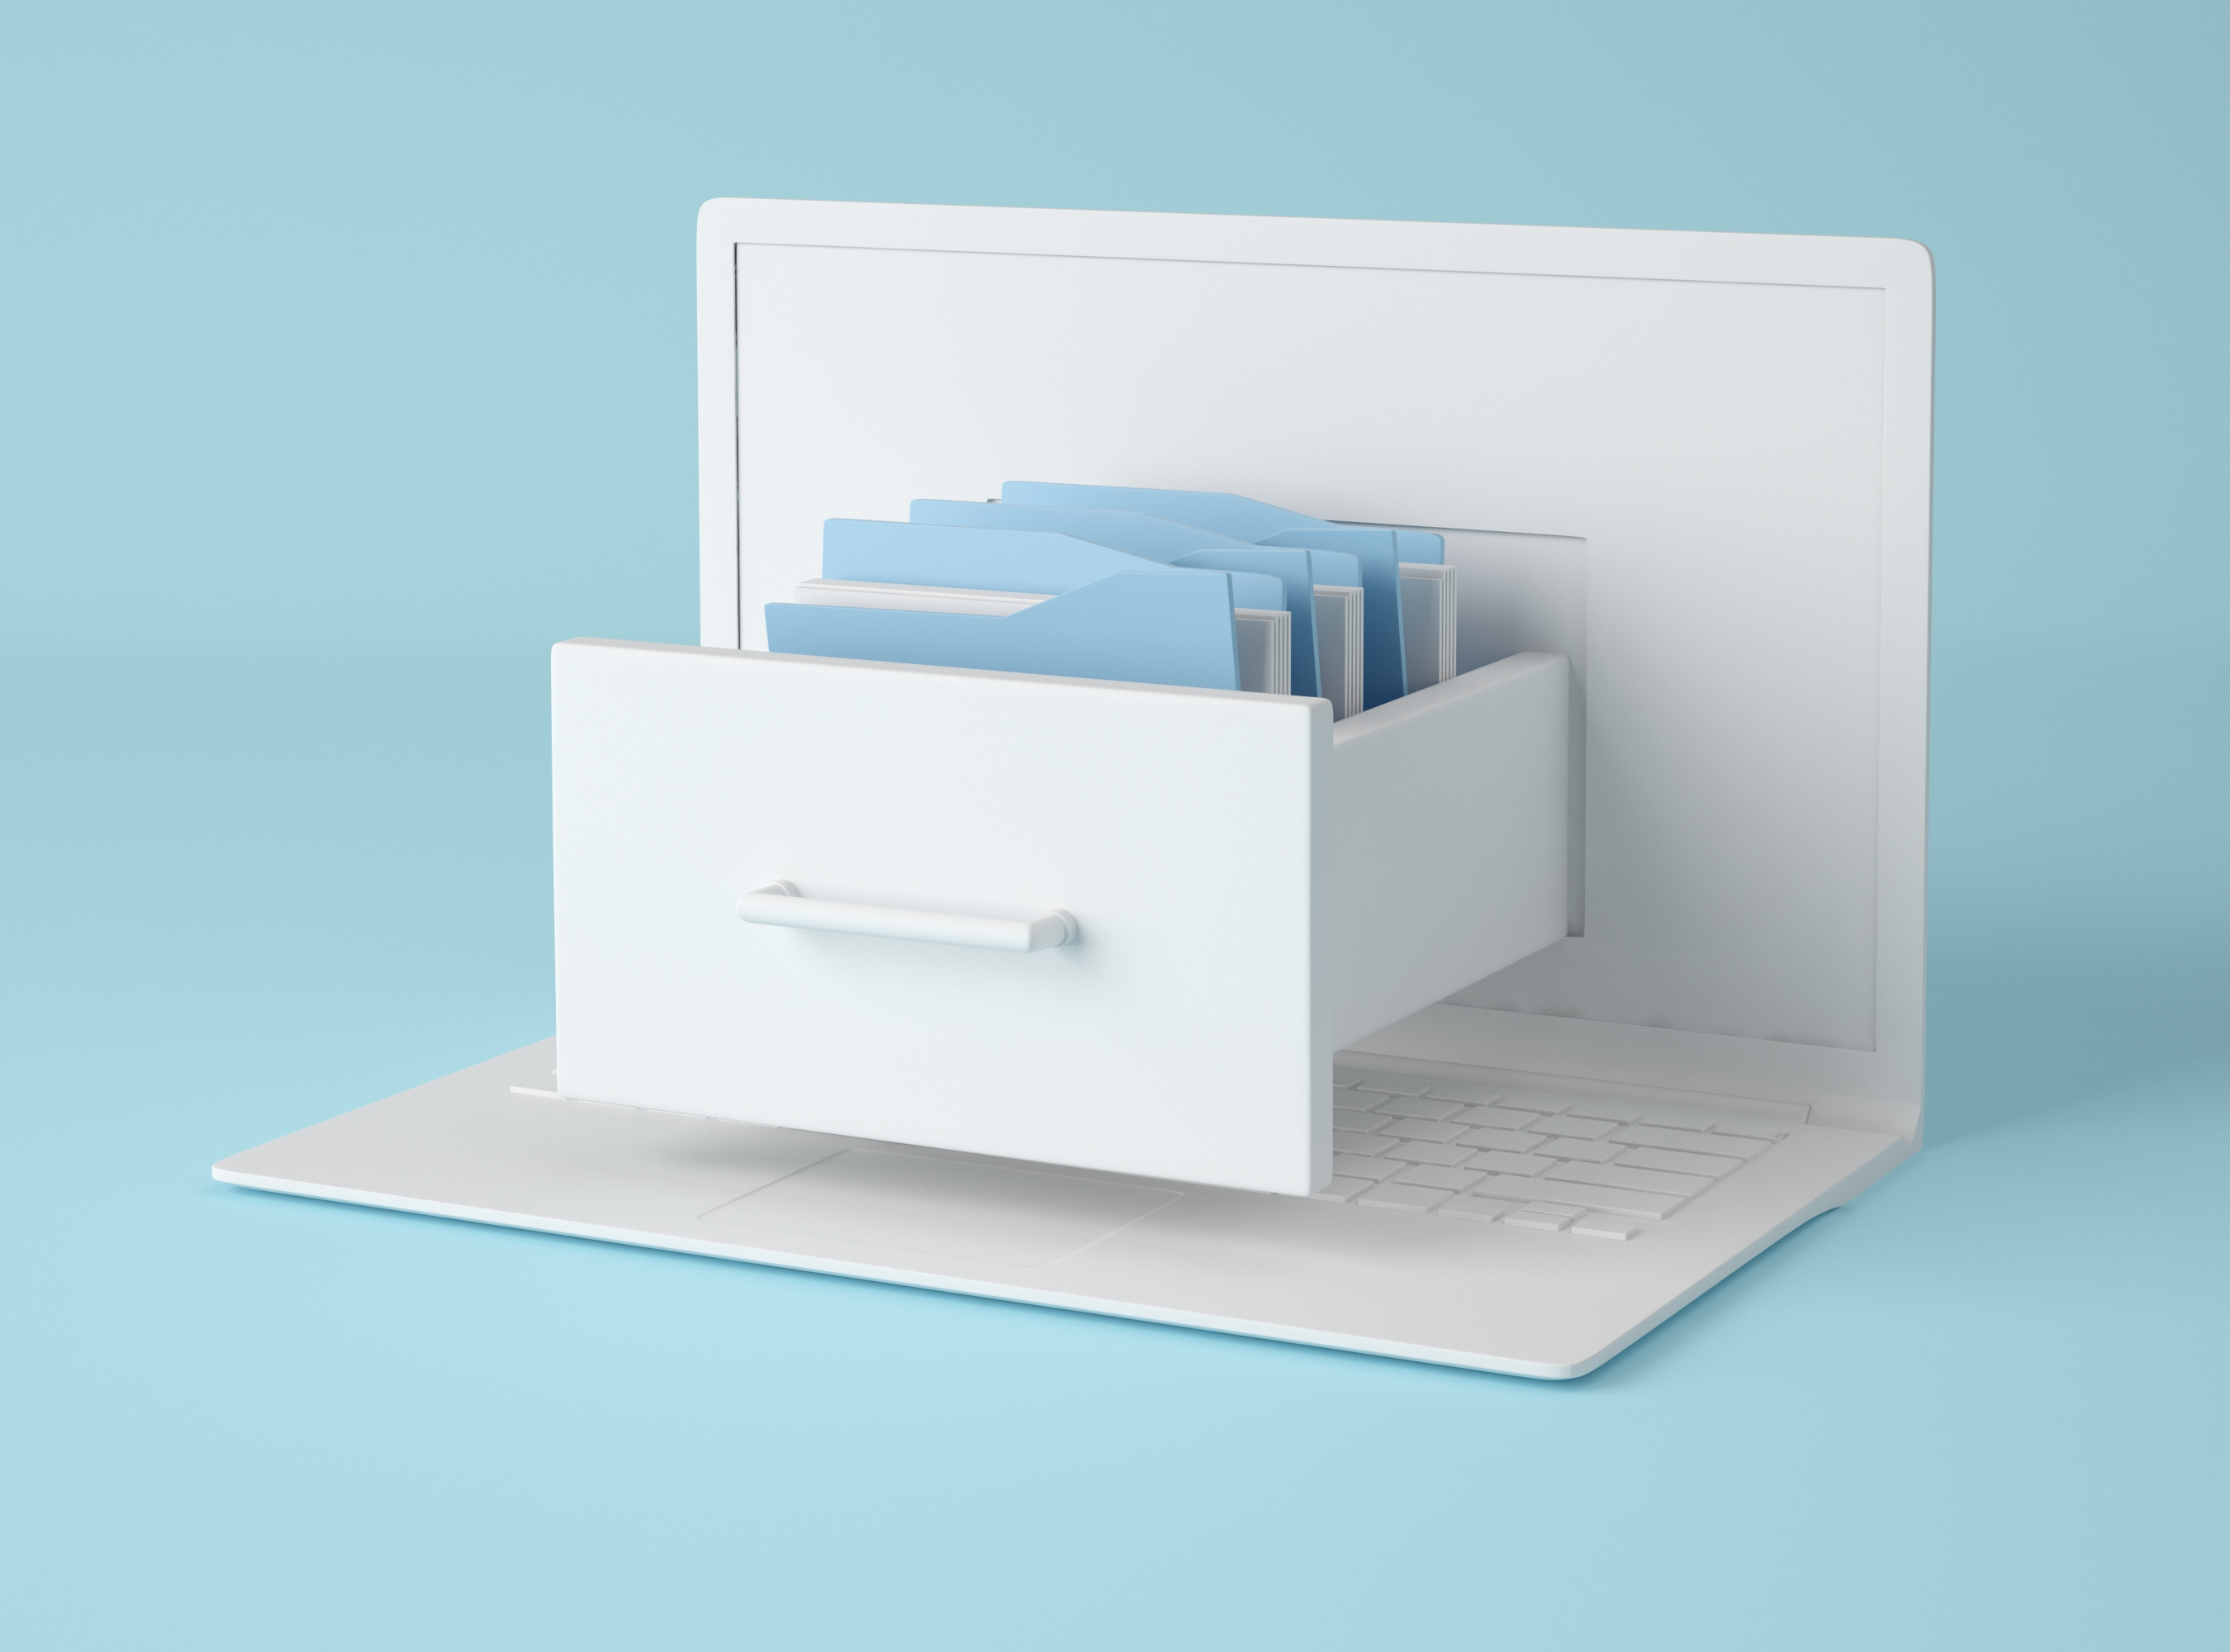 Computer laptop and file cabinet with folders.